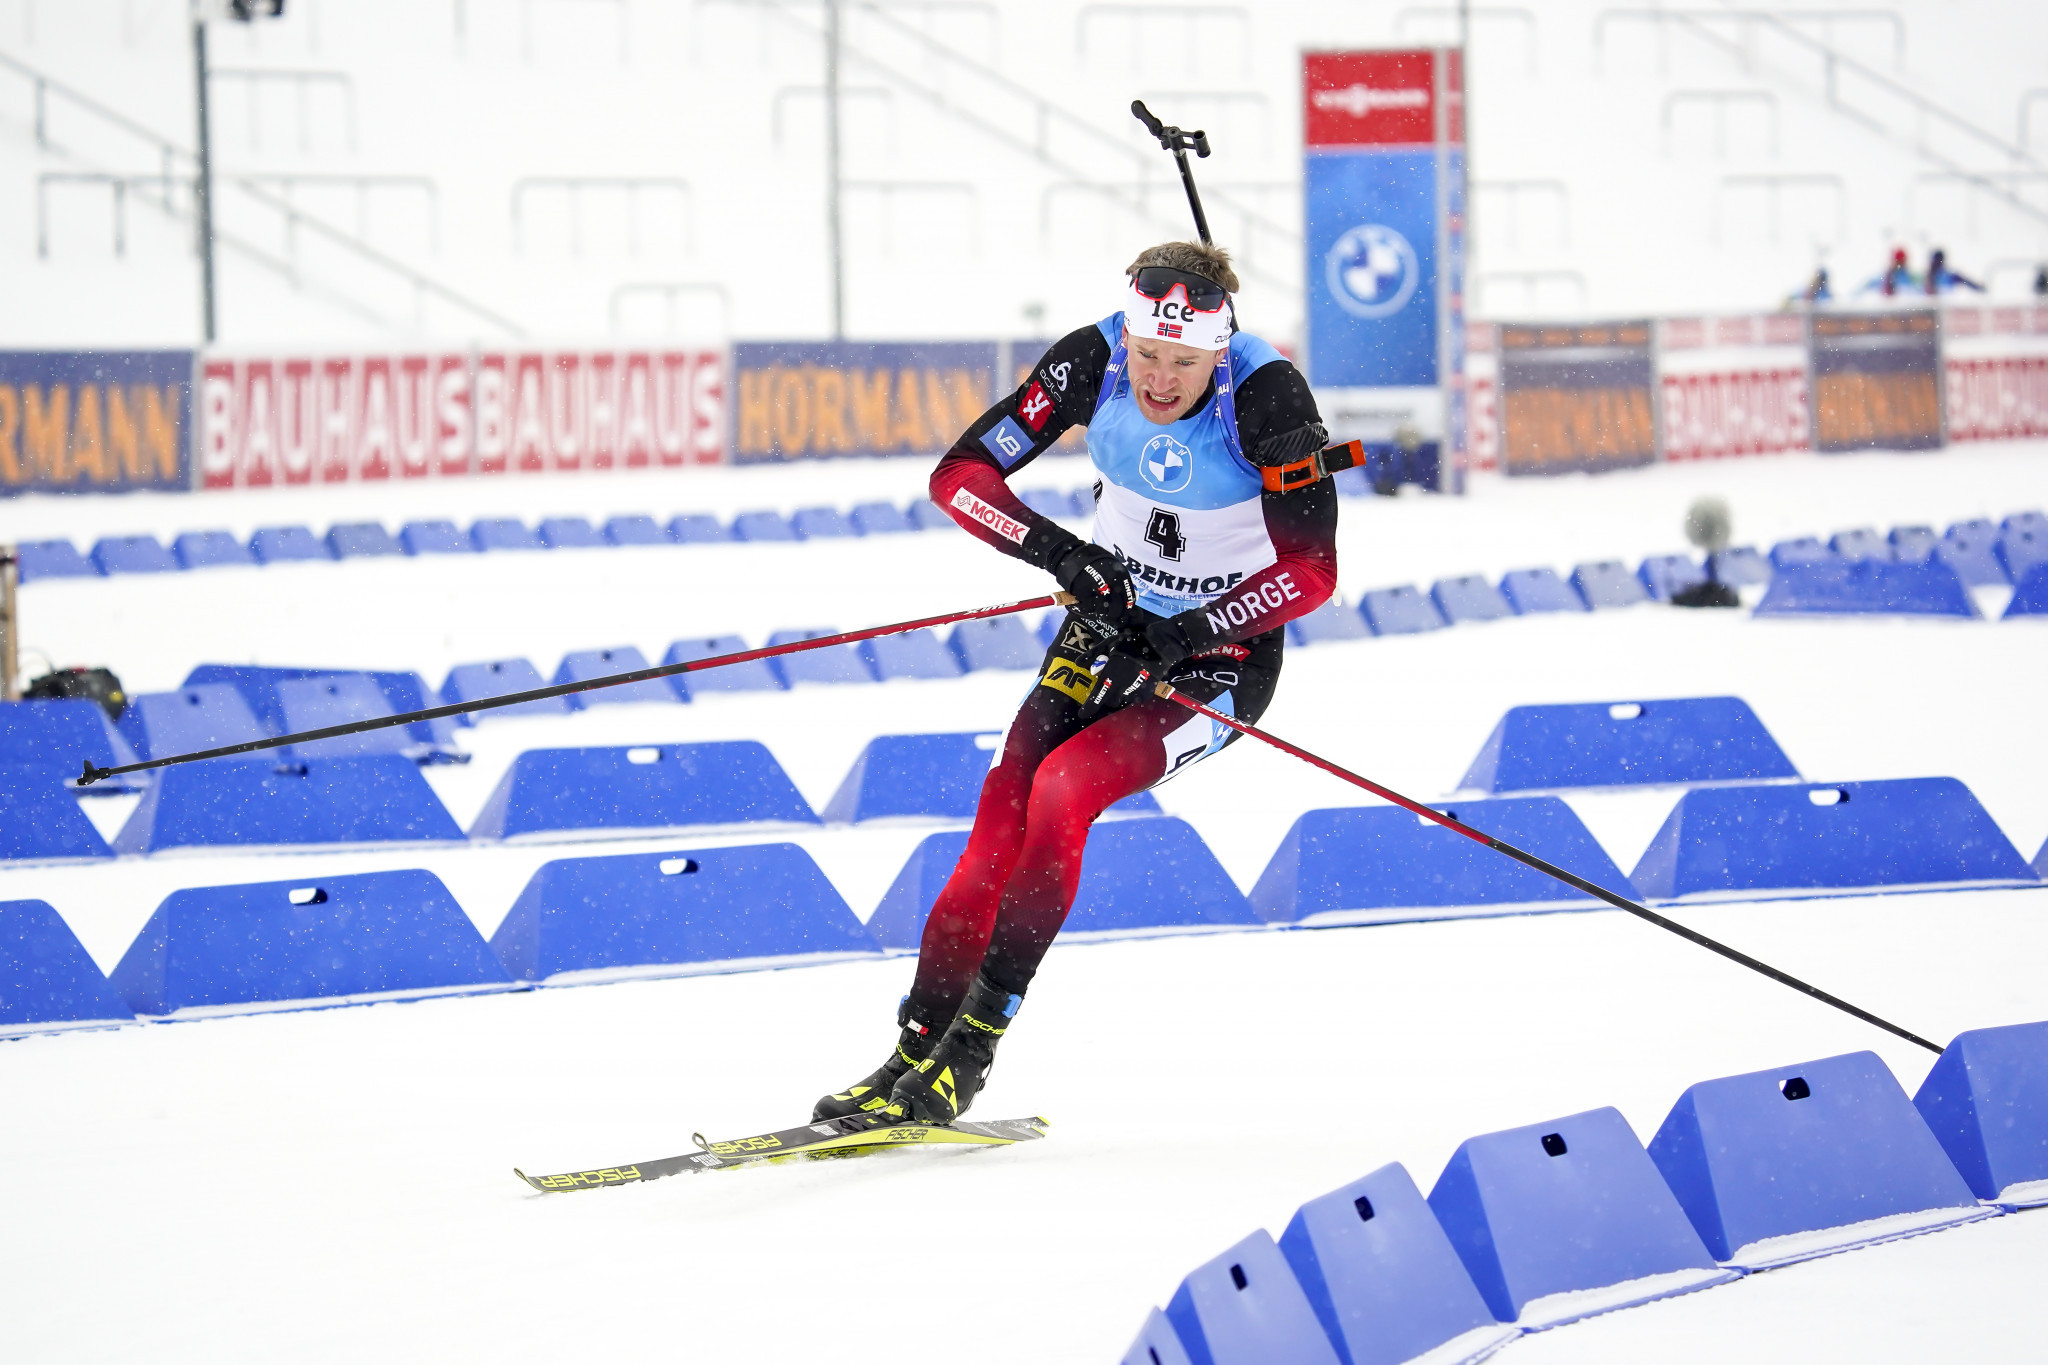 Bø wins close mass start contest at IBU Biathlon World Cup in Oberhof